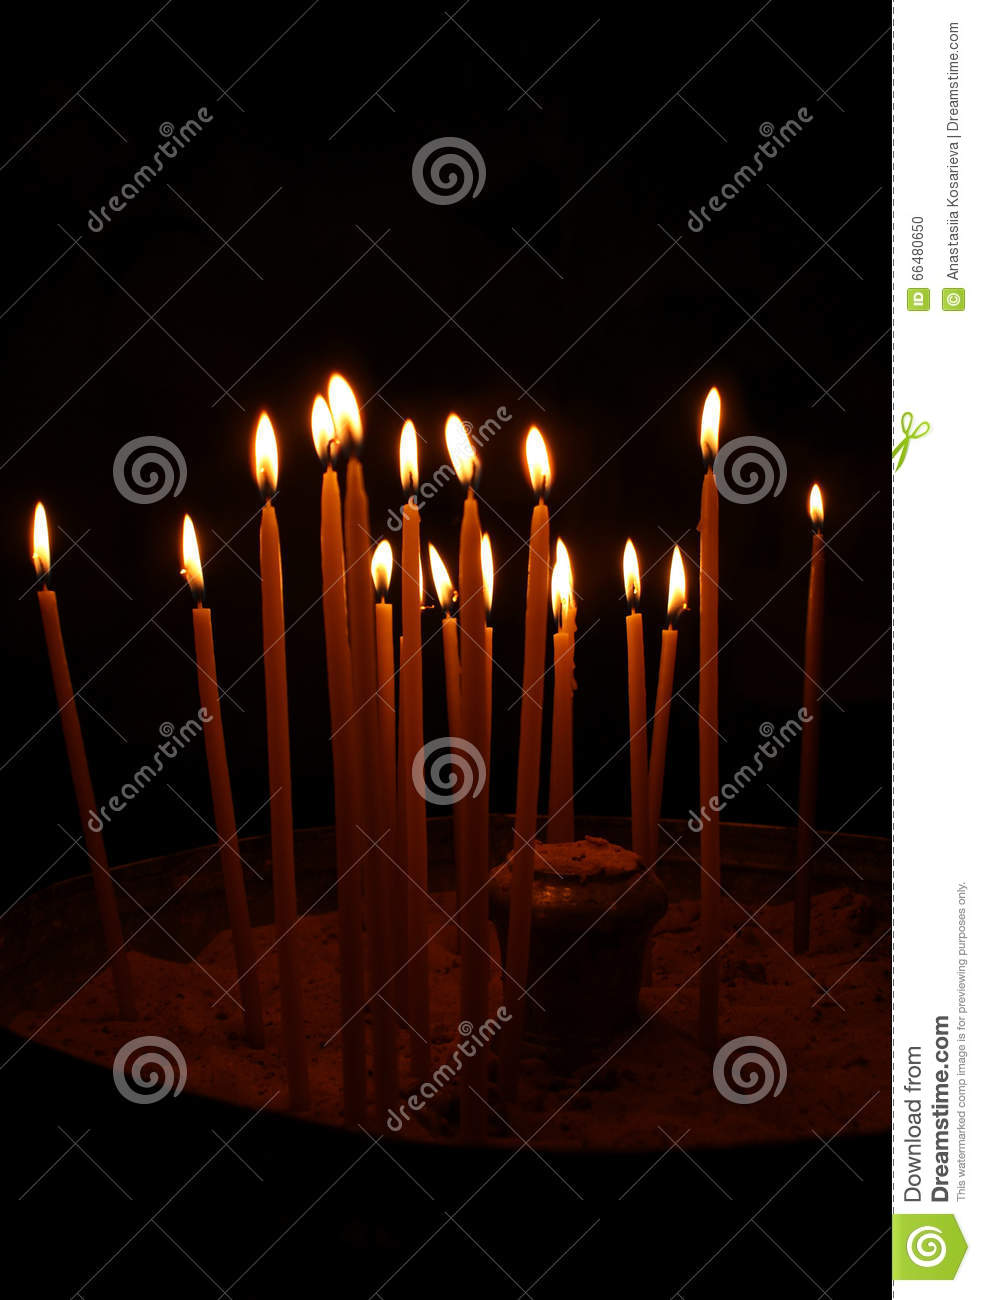 A lot oflighted candles in the dark